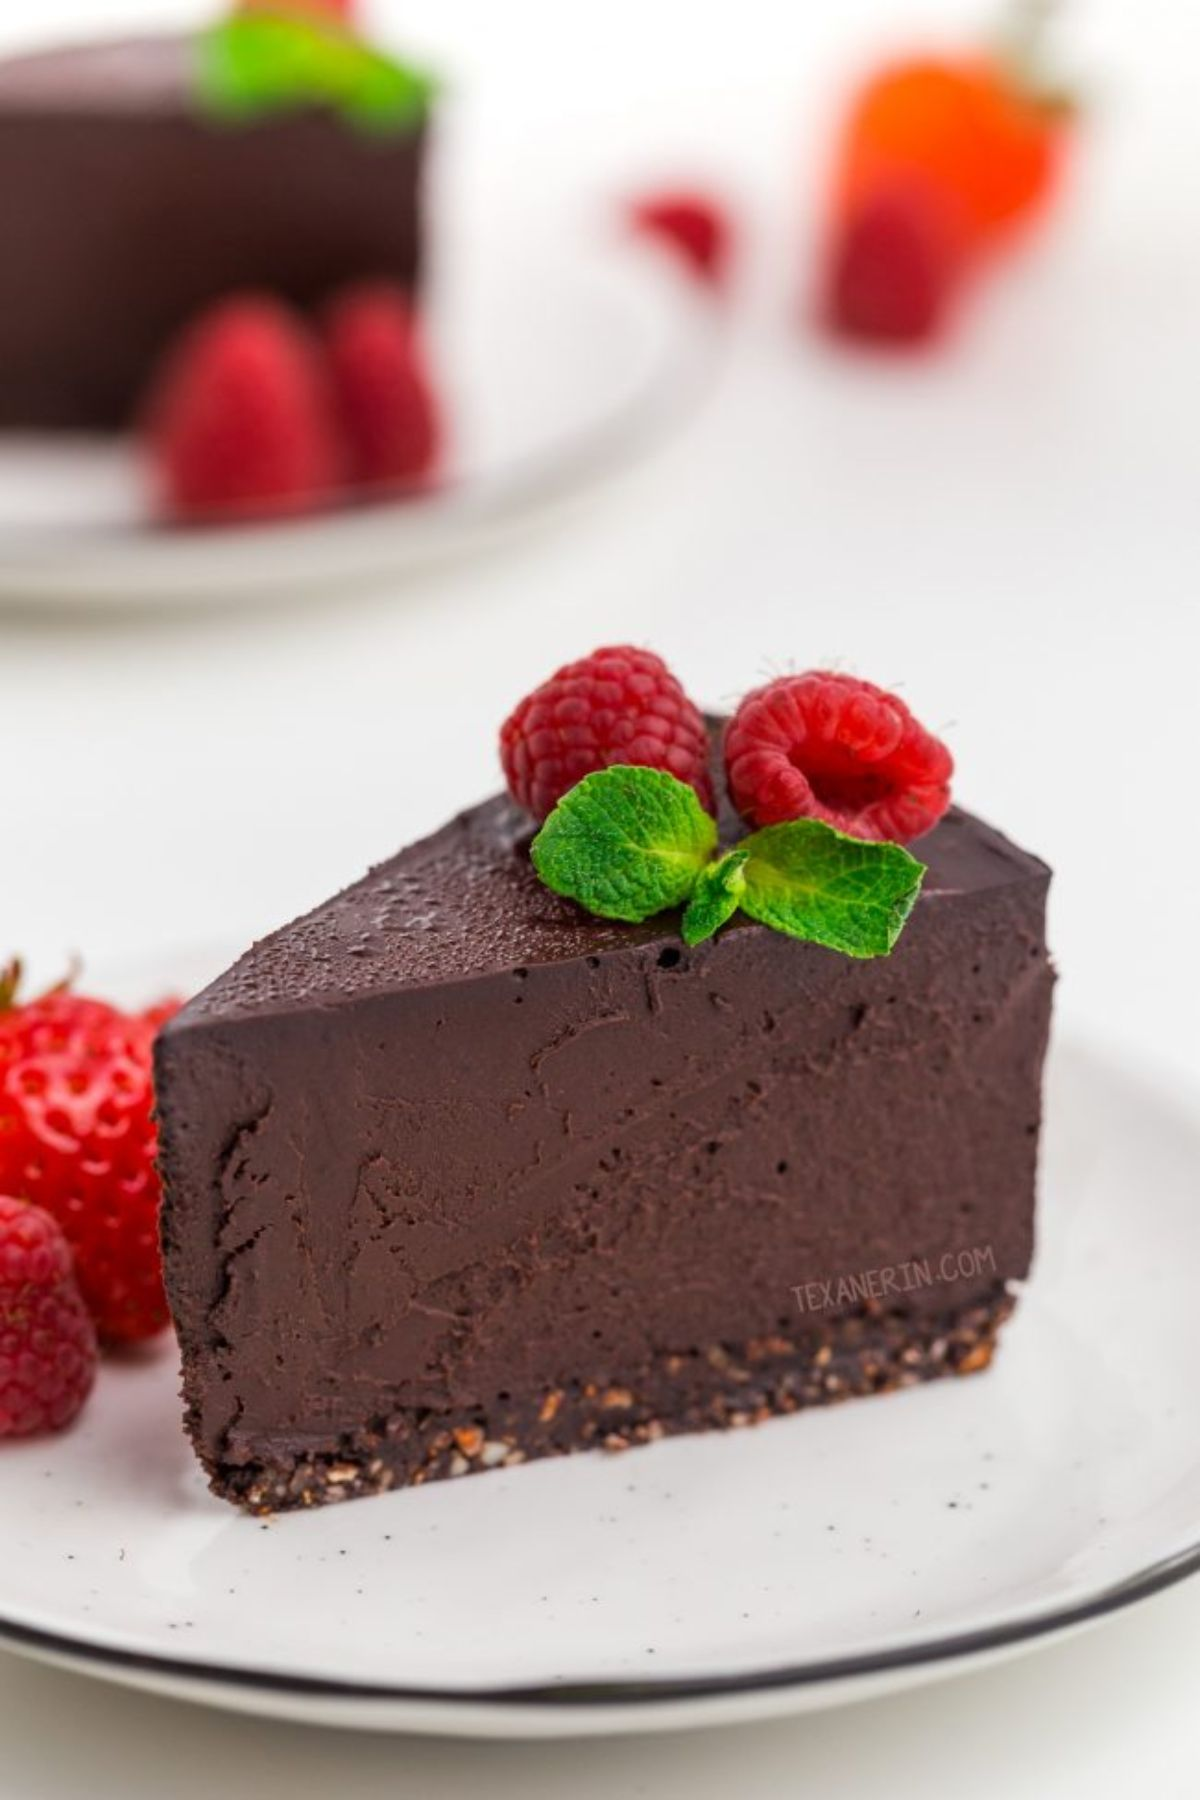 a white plate with a clice of chocolate cheesecake on it, topped with mint leaves and raspberries